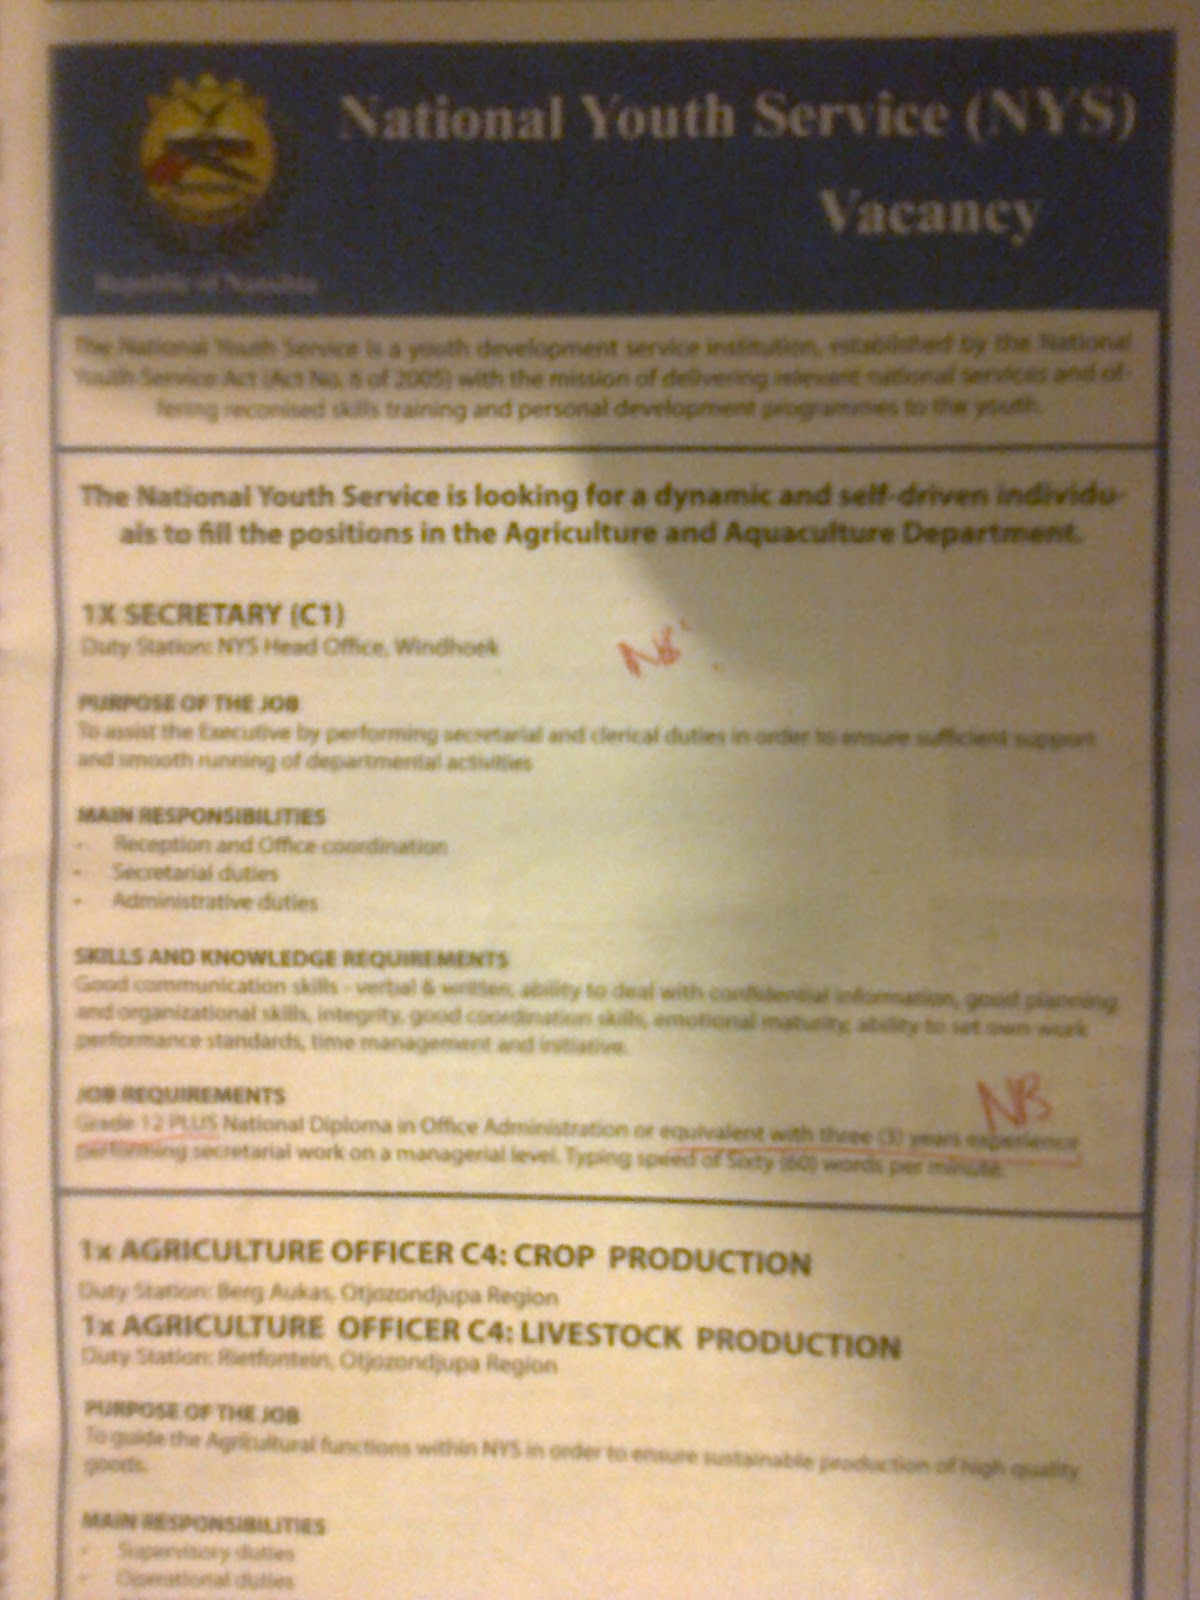 jobs in namibia  vacancy 1 x secretary c1  3 years exp